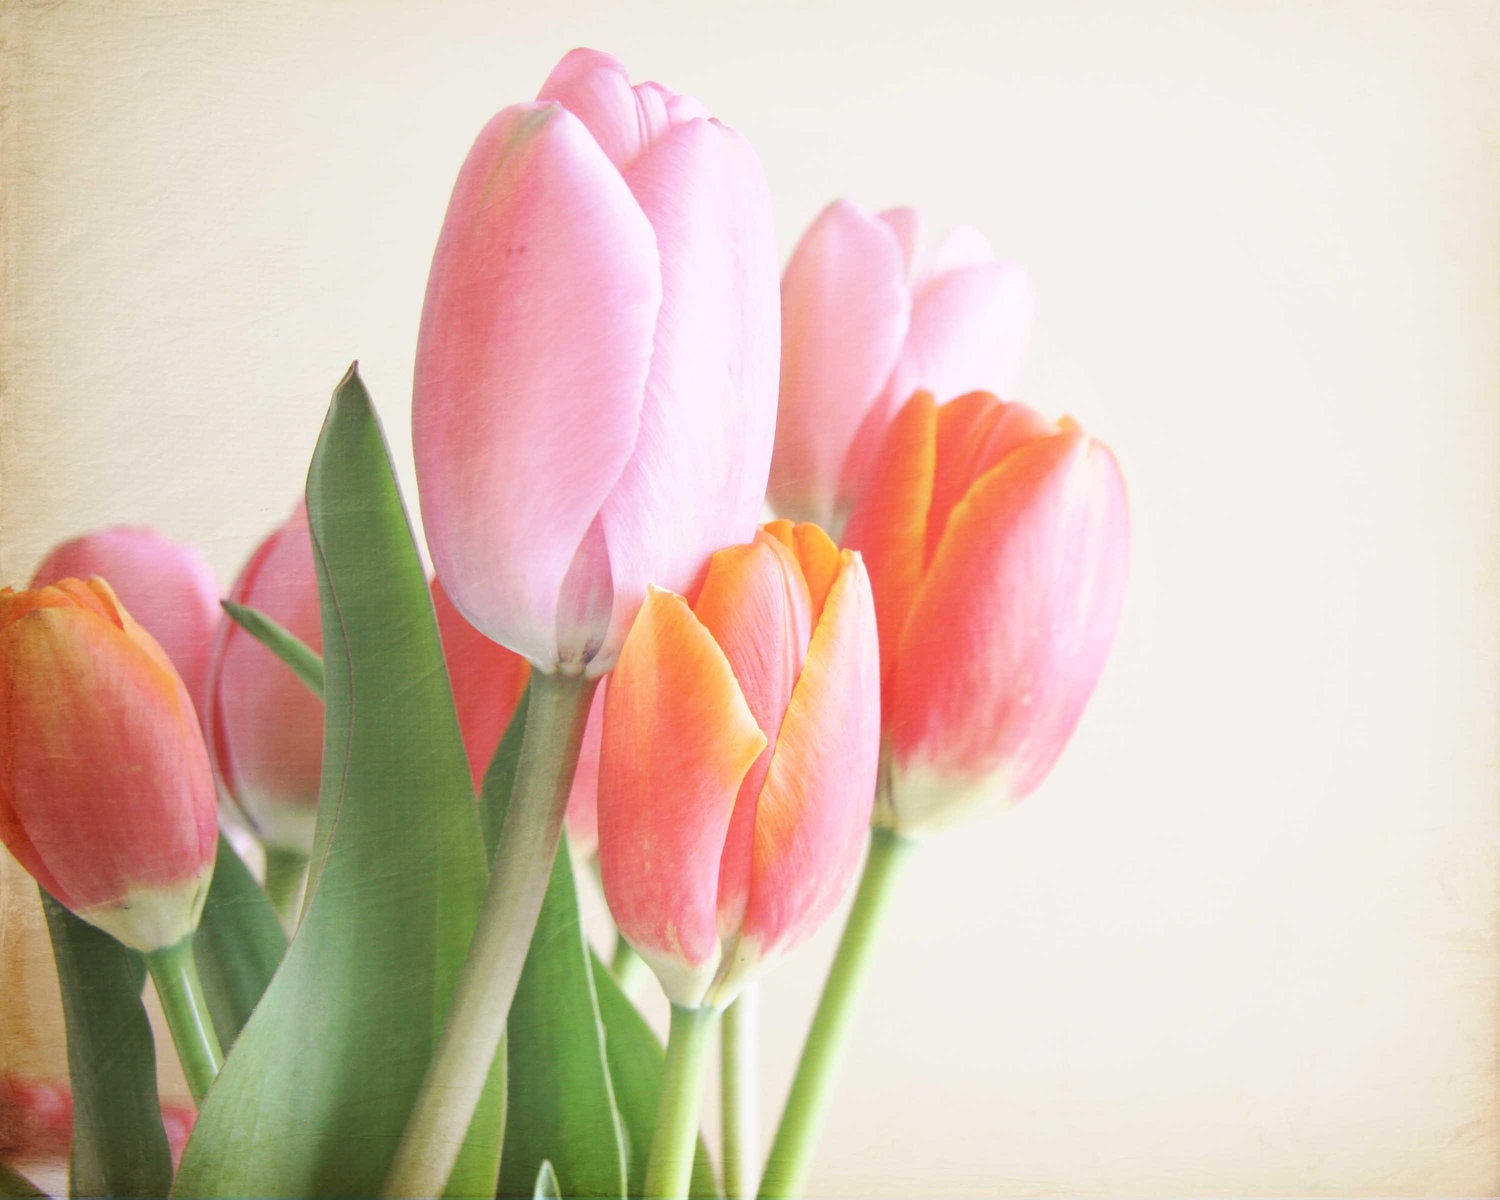 mothers day, spring, spring tulips, easter colours, pastel colors, peach, pink, flowers, blossoms, peach, green, 8x10 photo - trekkerjen